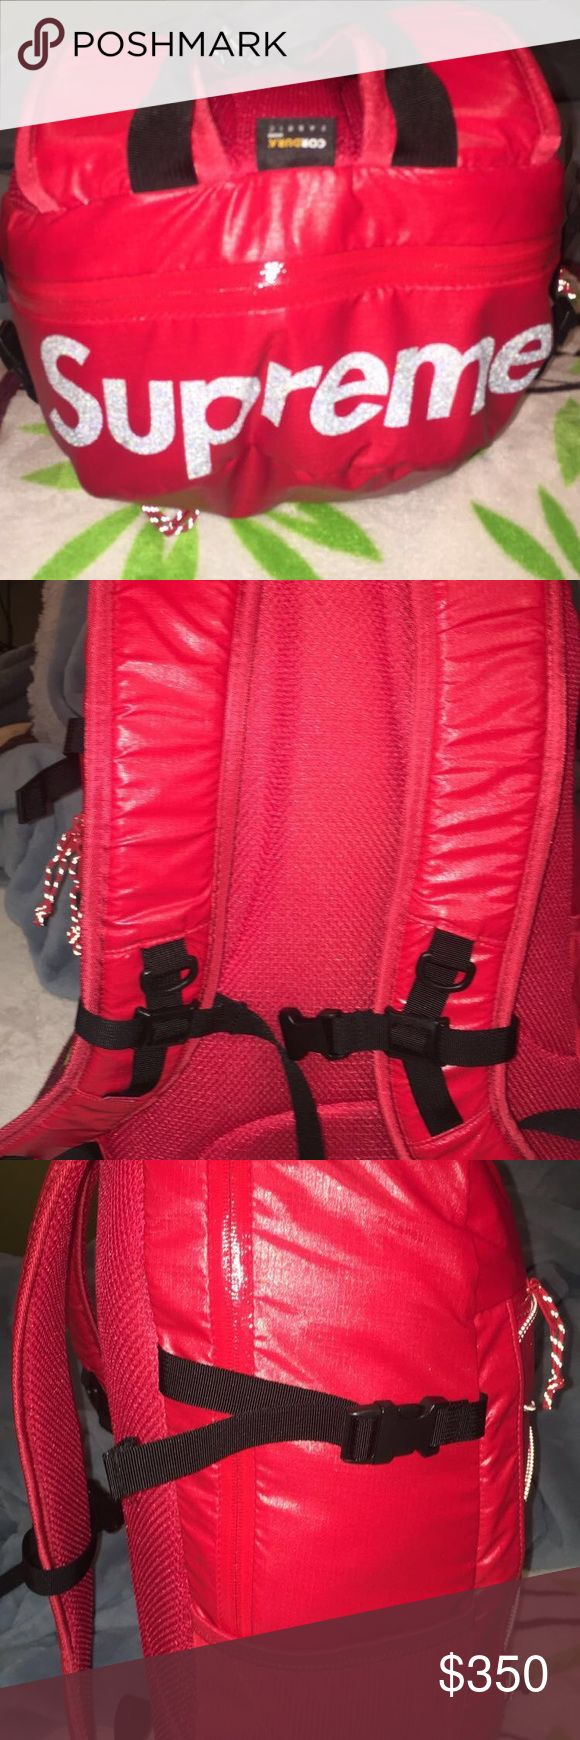 Selling Authentic Supreme Backpack Fall 2017 Red Supreme Backpack I have all the information of purchase.Bought on The supreme Online Store Supreme Bags Backpacks